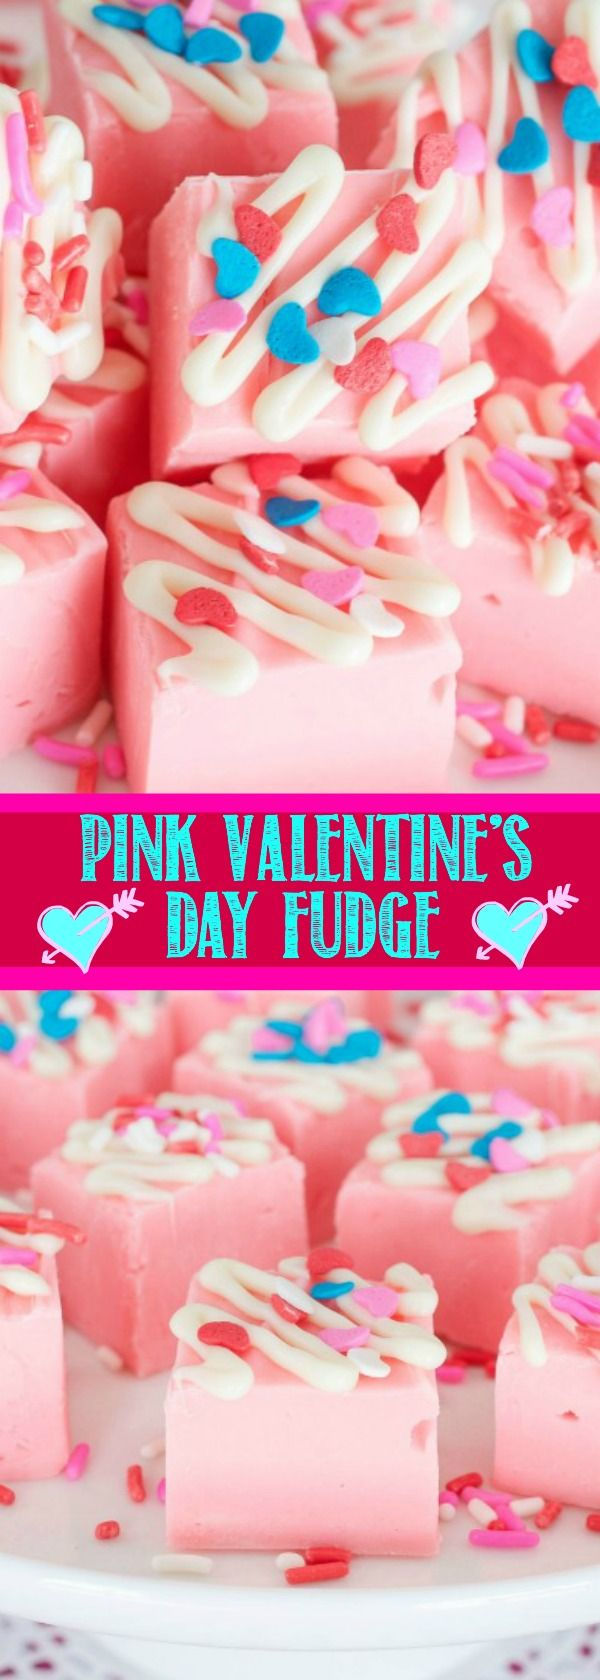 Easy Pink Lemonade Fudge is the perfect treat for Valentine's Day when festive sprinkles are added. It also makes a yummy no bake summertime treat!